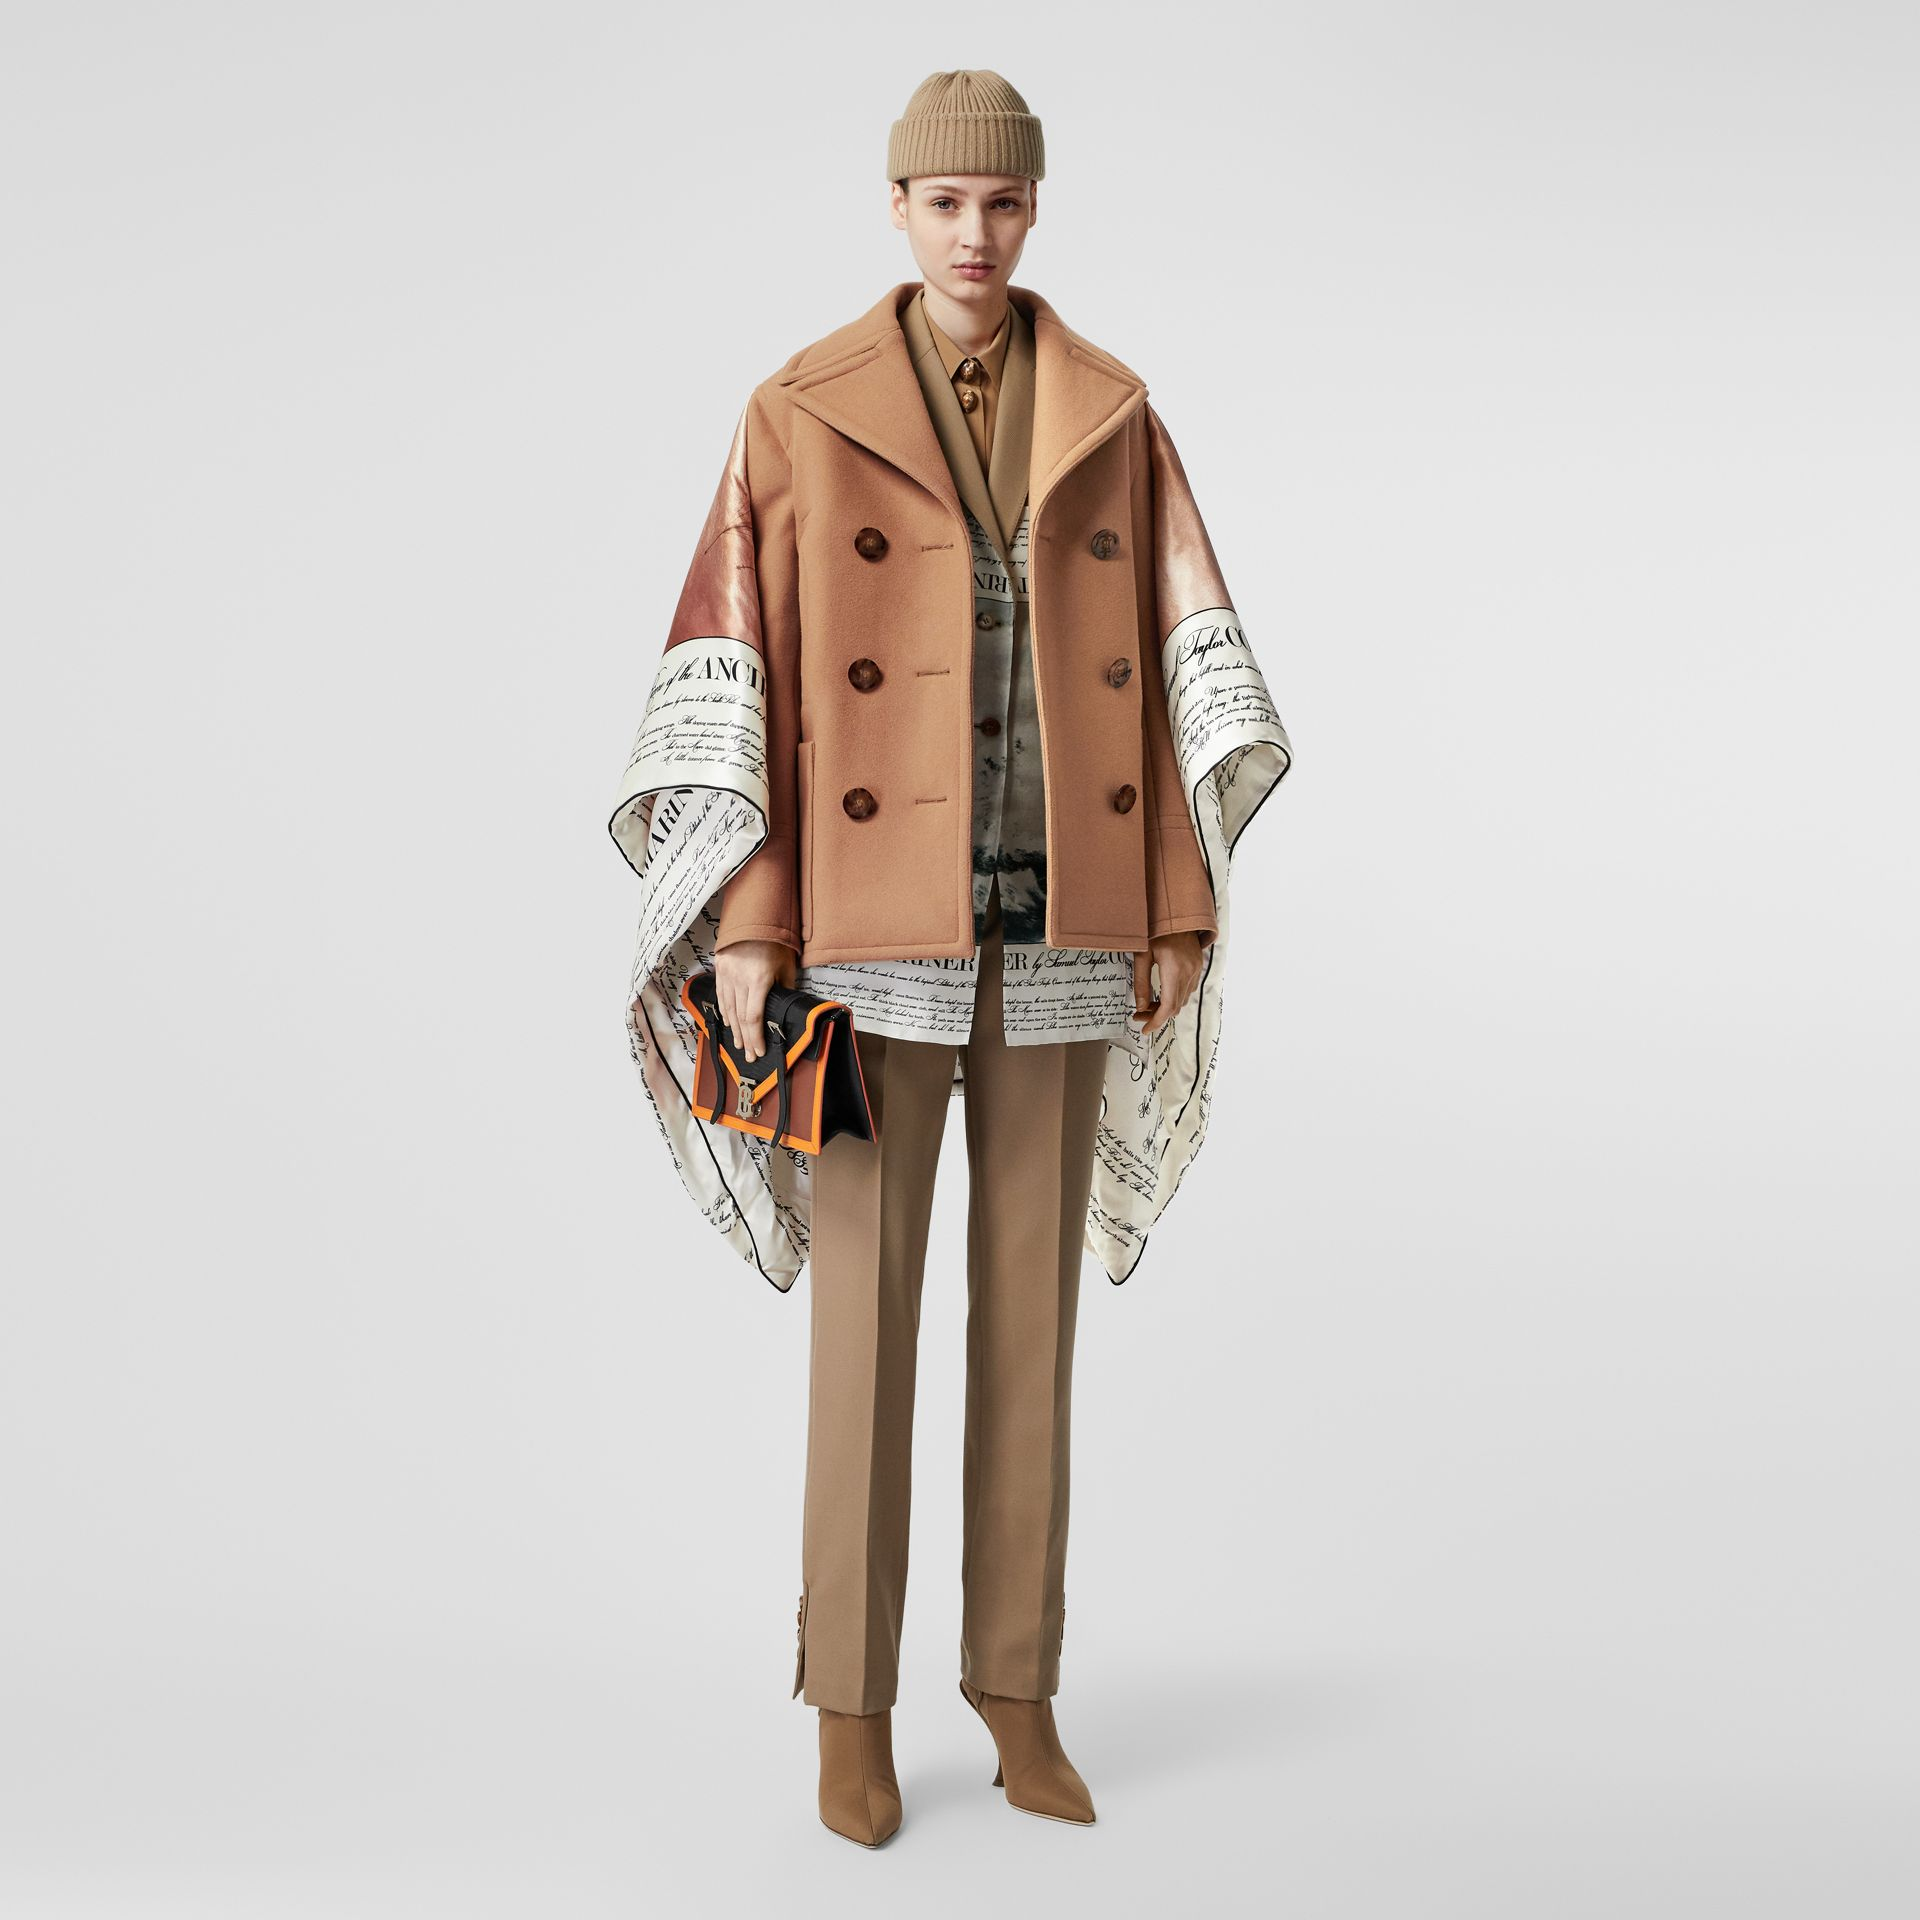 Mariner Print Blanket Detail Technical Wool Pea Coat in Warm Camel - Women | Burberry - gallery image 5